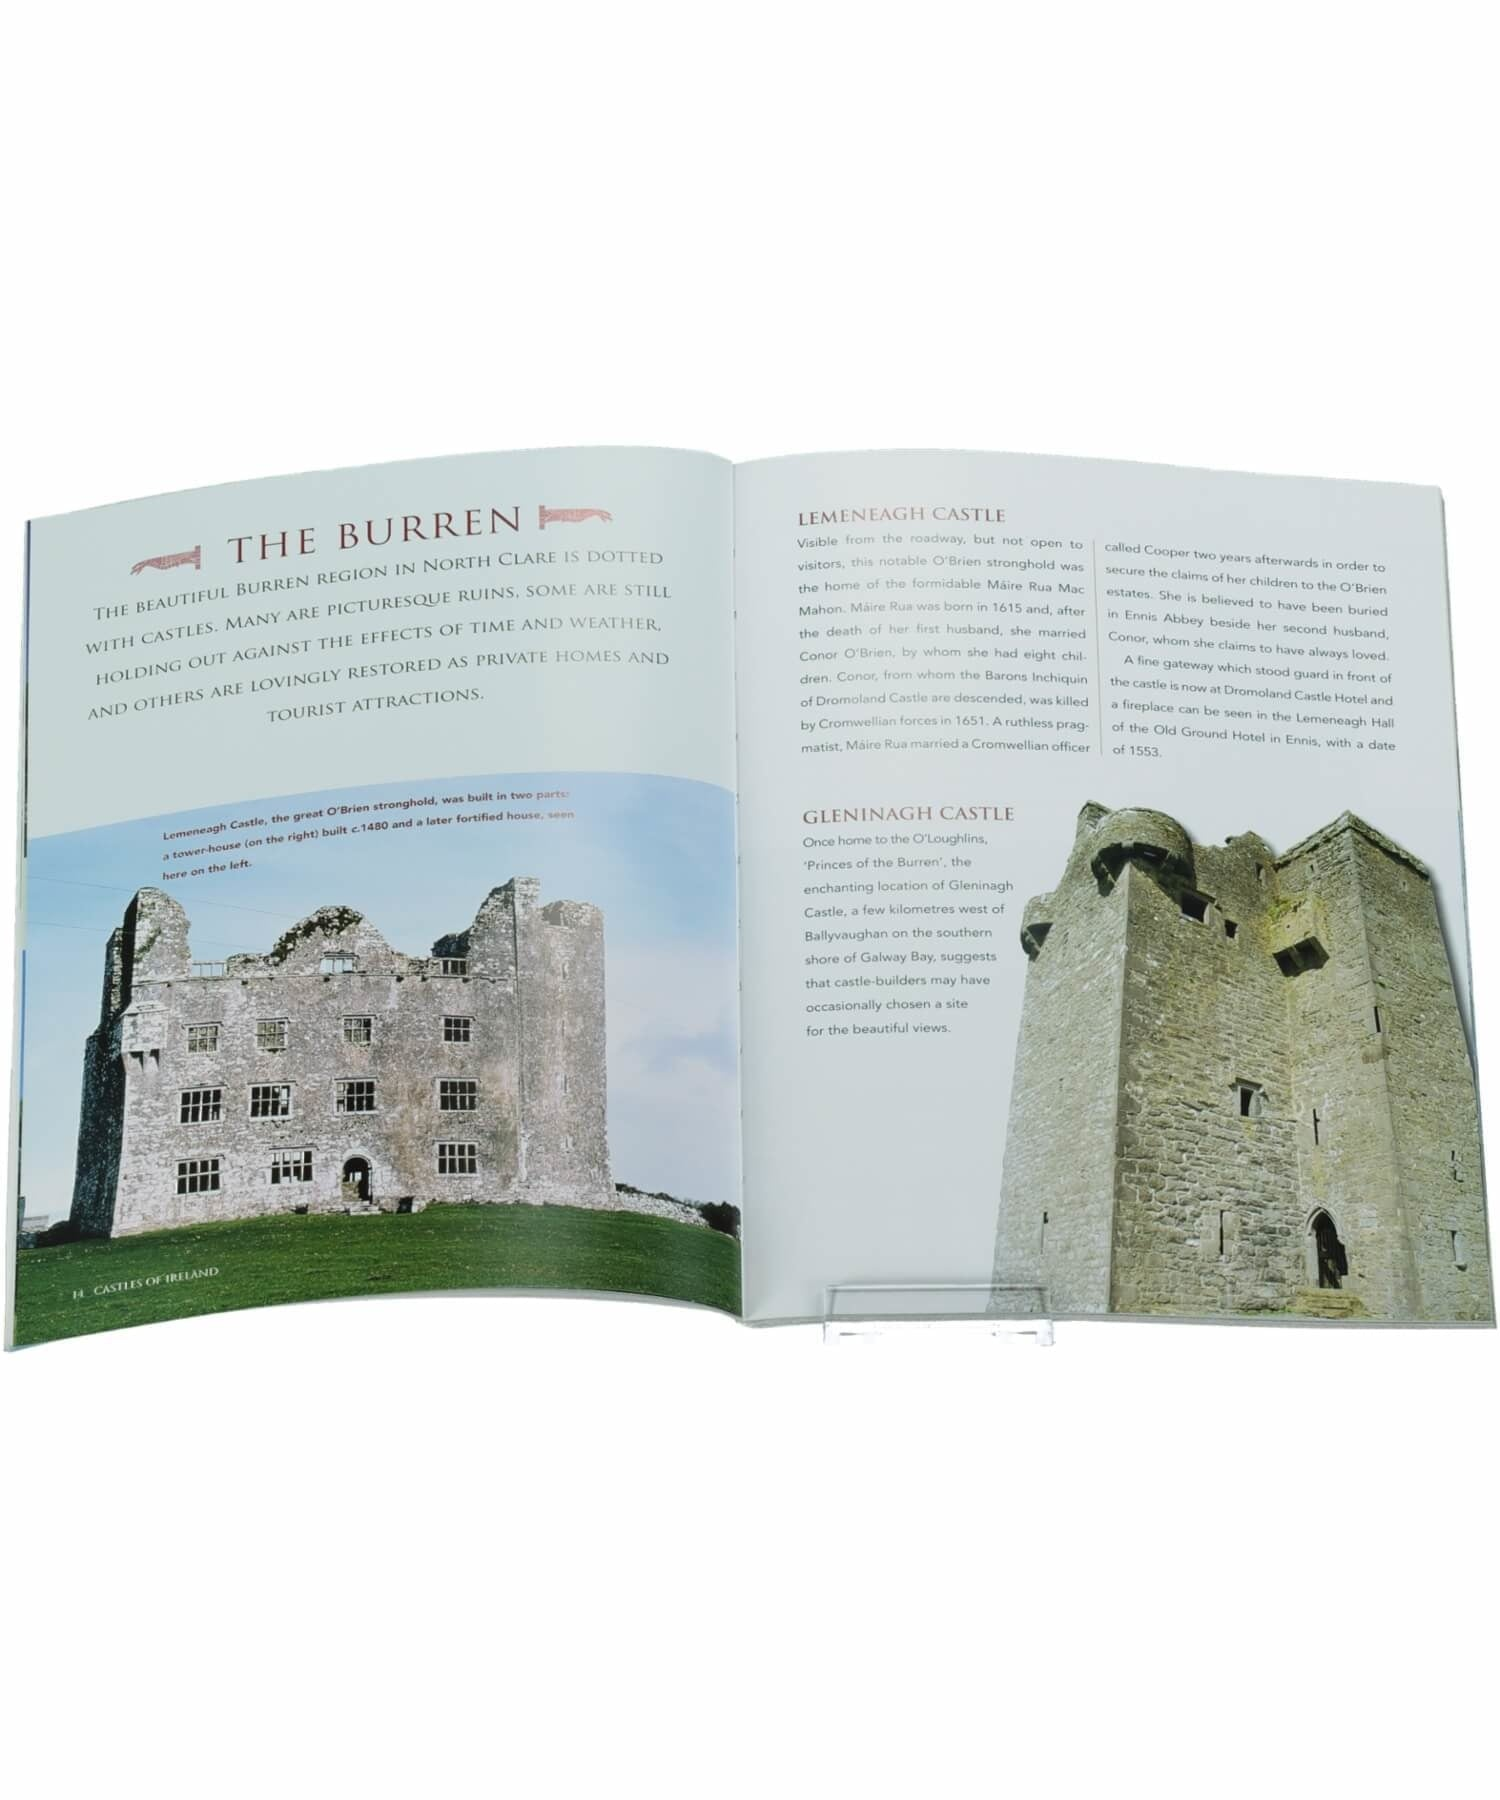 Castles of Ireland - [The O'Brien Press] - Books & Stationery - Irish Gifts